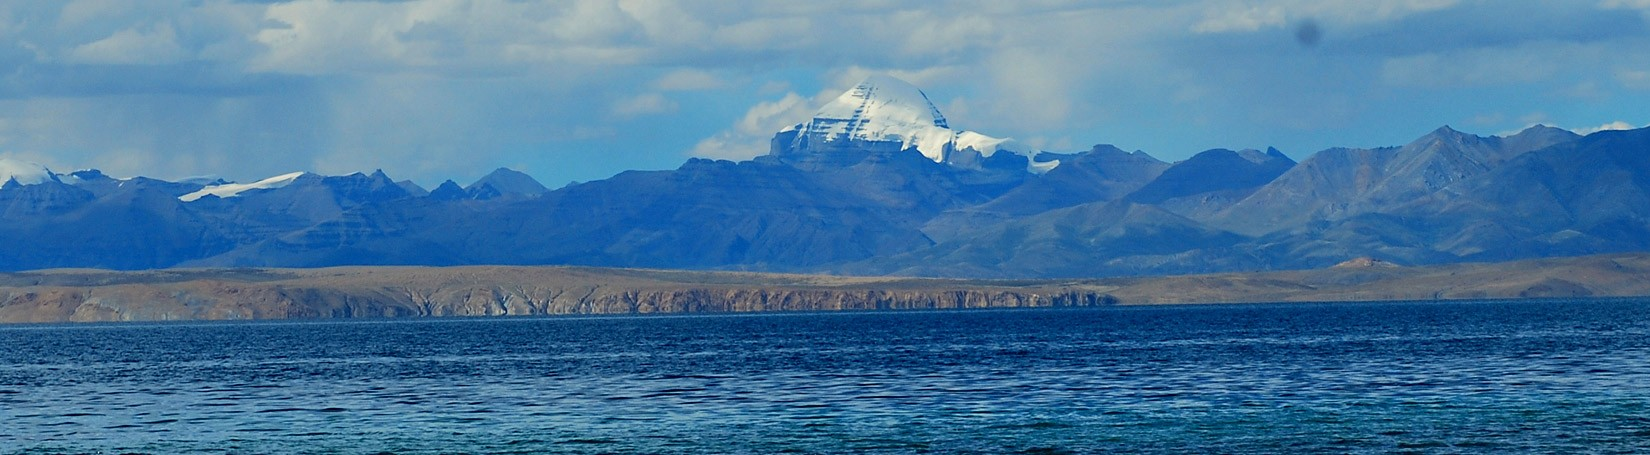 Mount Kailash and Lake Mansarovar